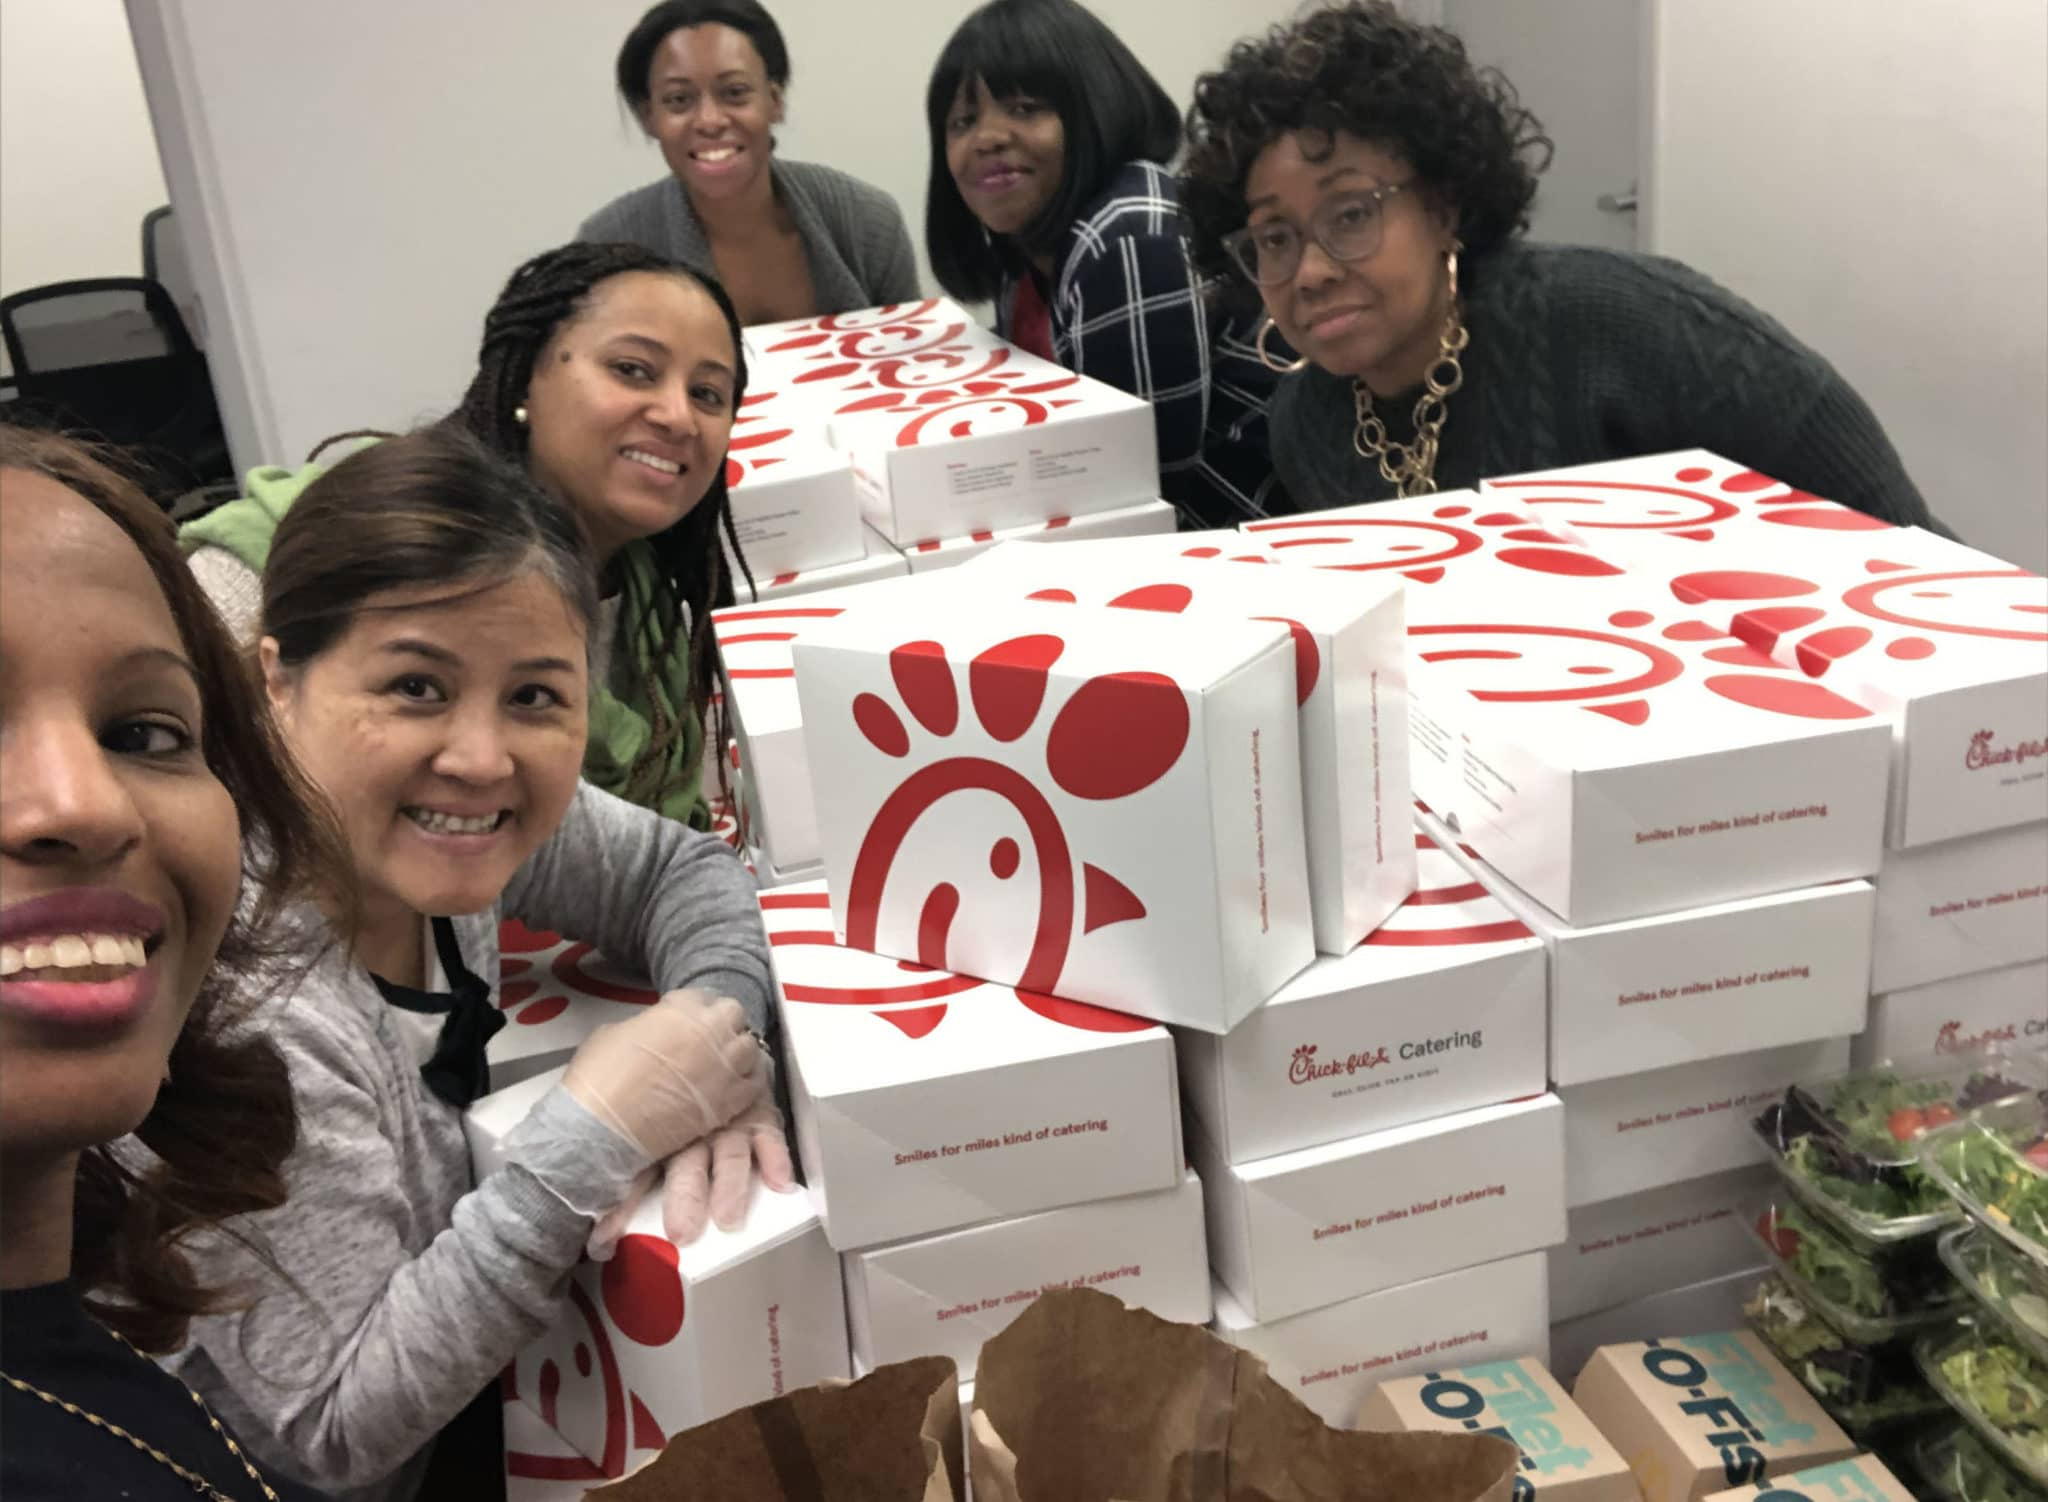 United Healthcare donated Chick Fila in Frederick, Maryland